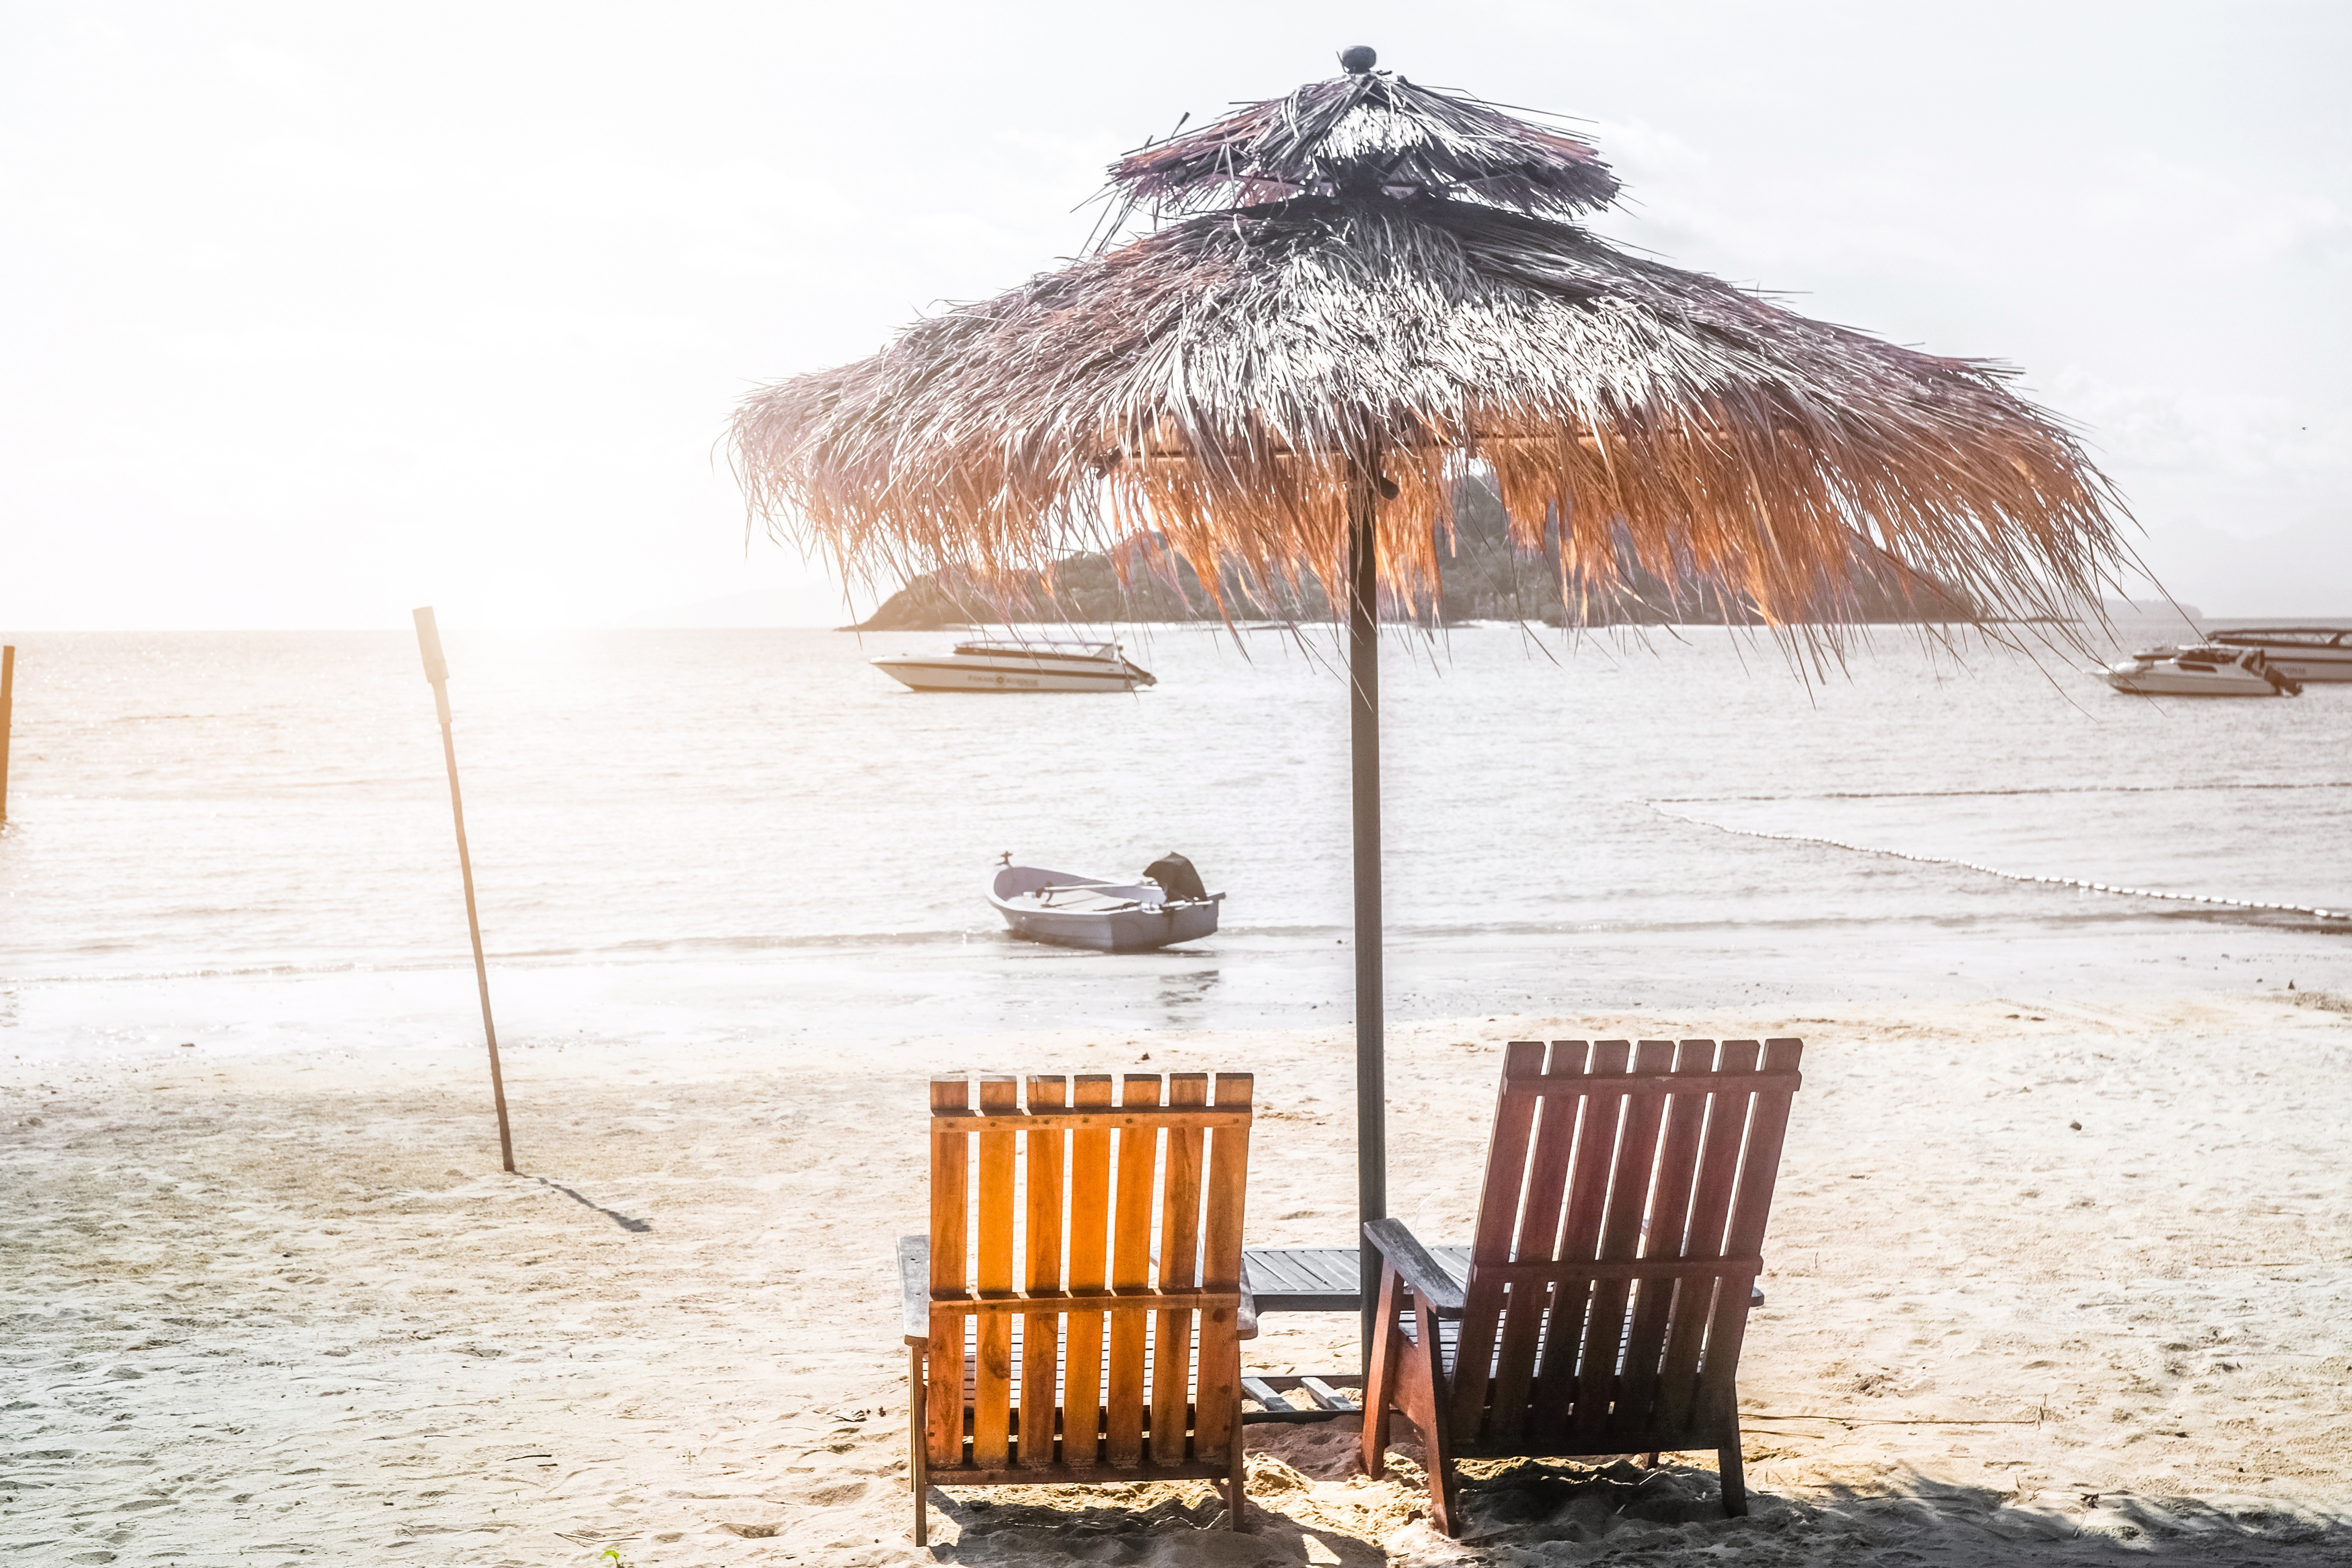 Vacation in tropical countries. Beach chairs and umbrella on the beach